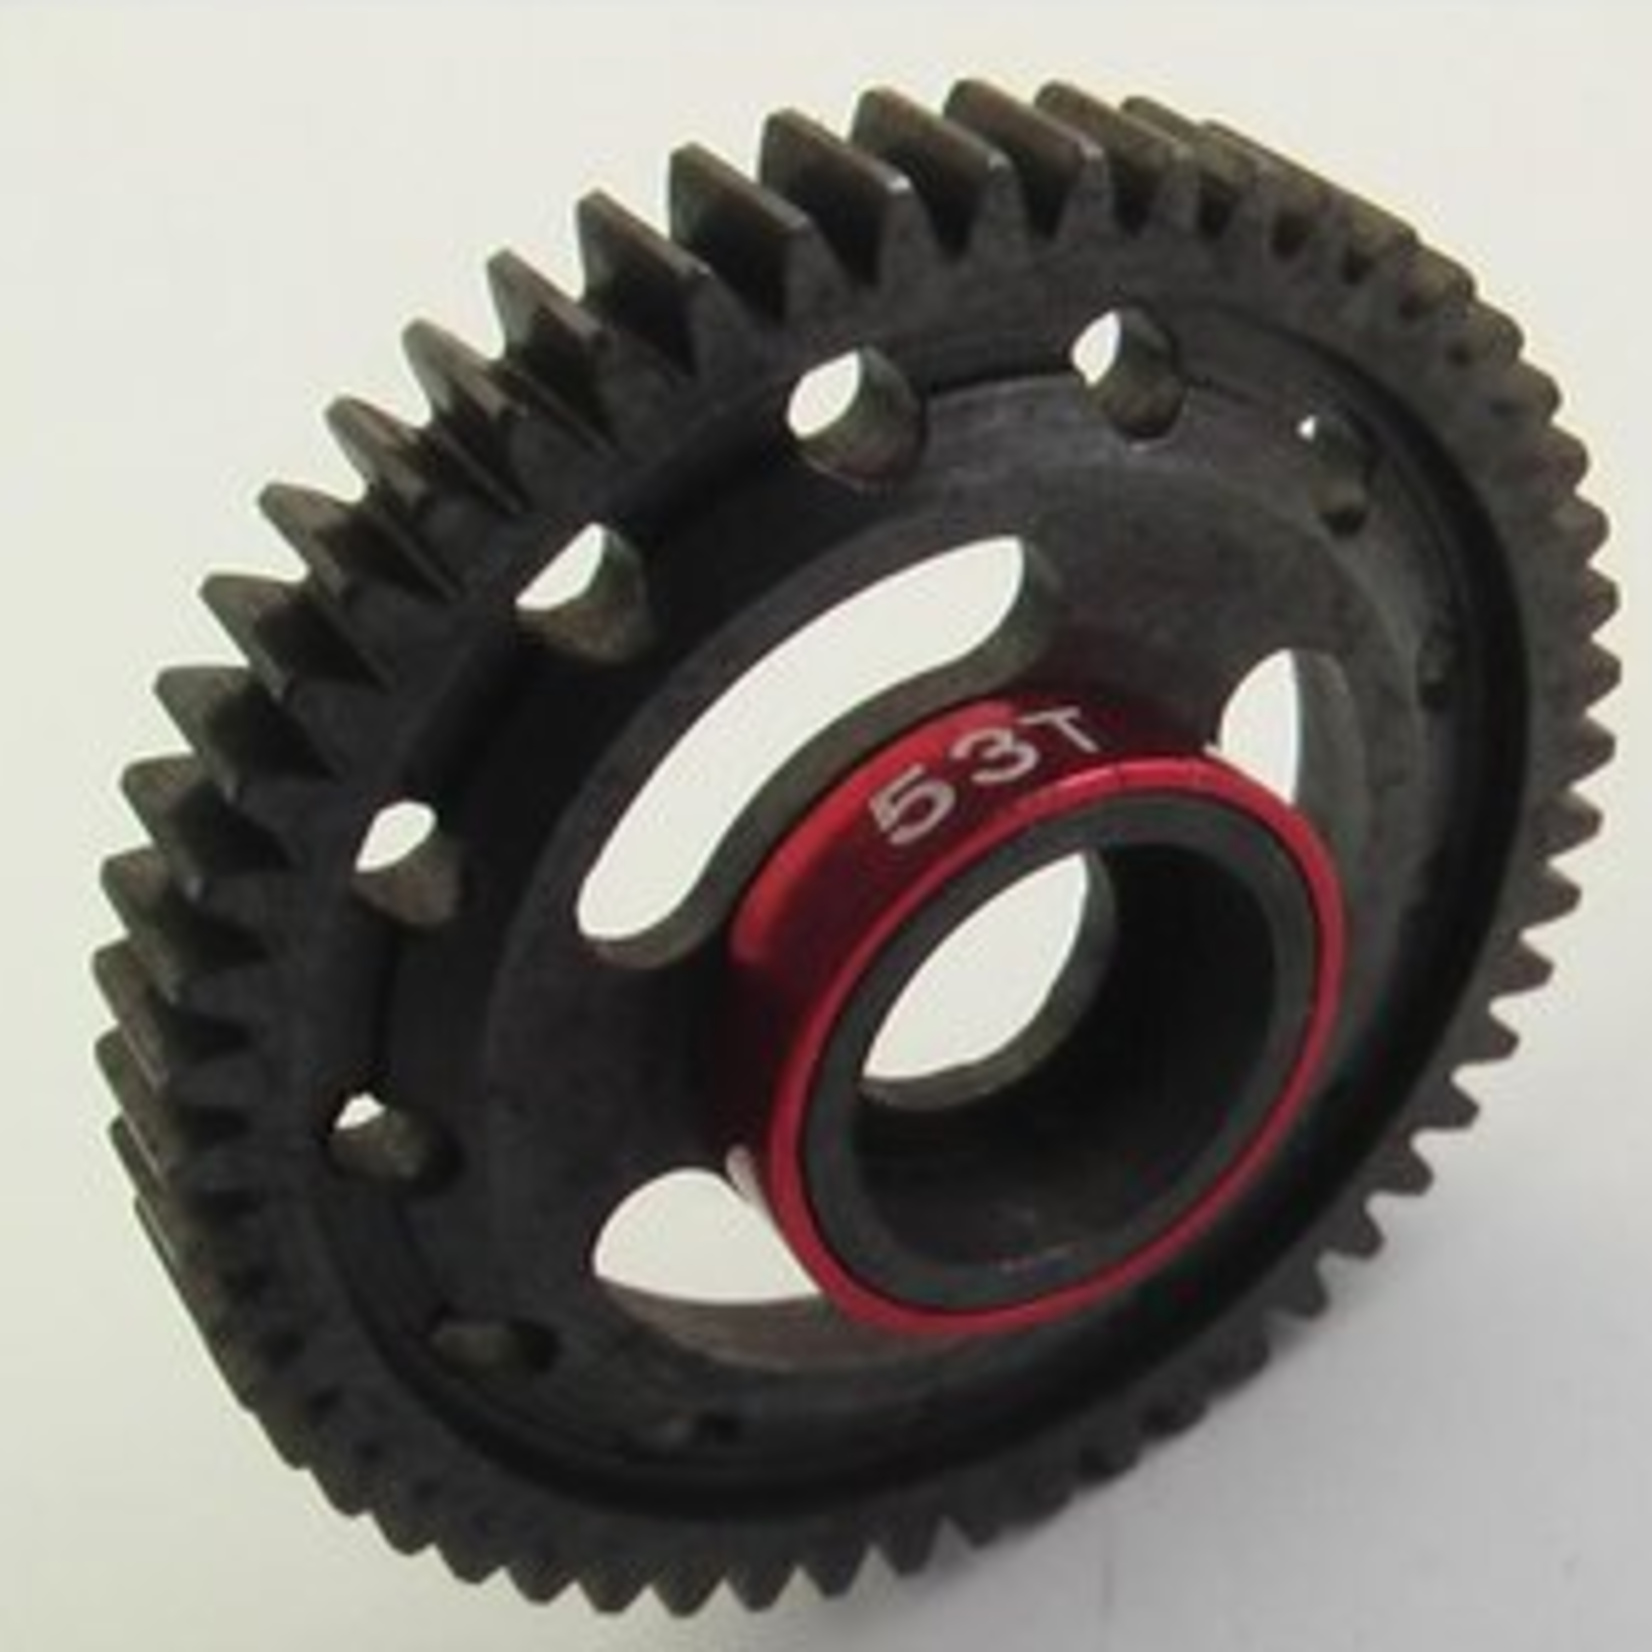 Hot Racing HRASVXS853 Hot Racing Steel Spur Gear, 53 Tooth, Red for Traxxas 1/16 Scale